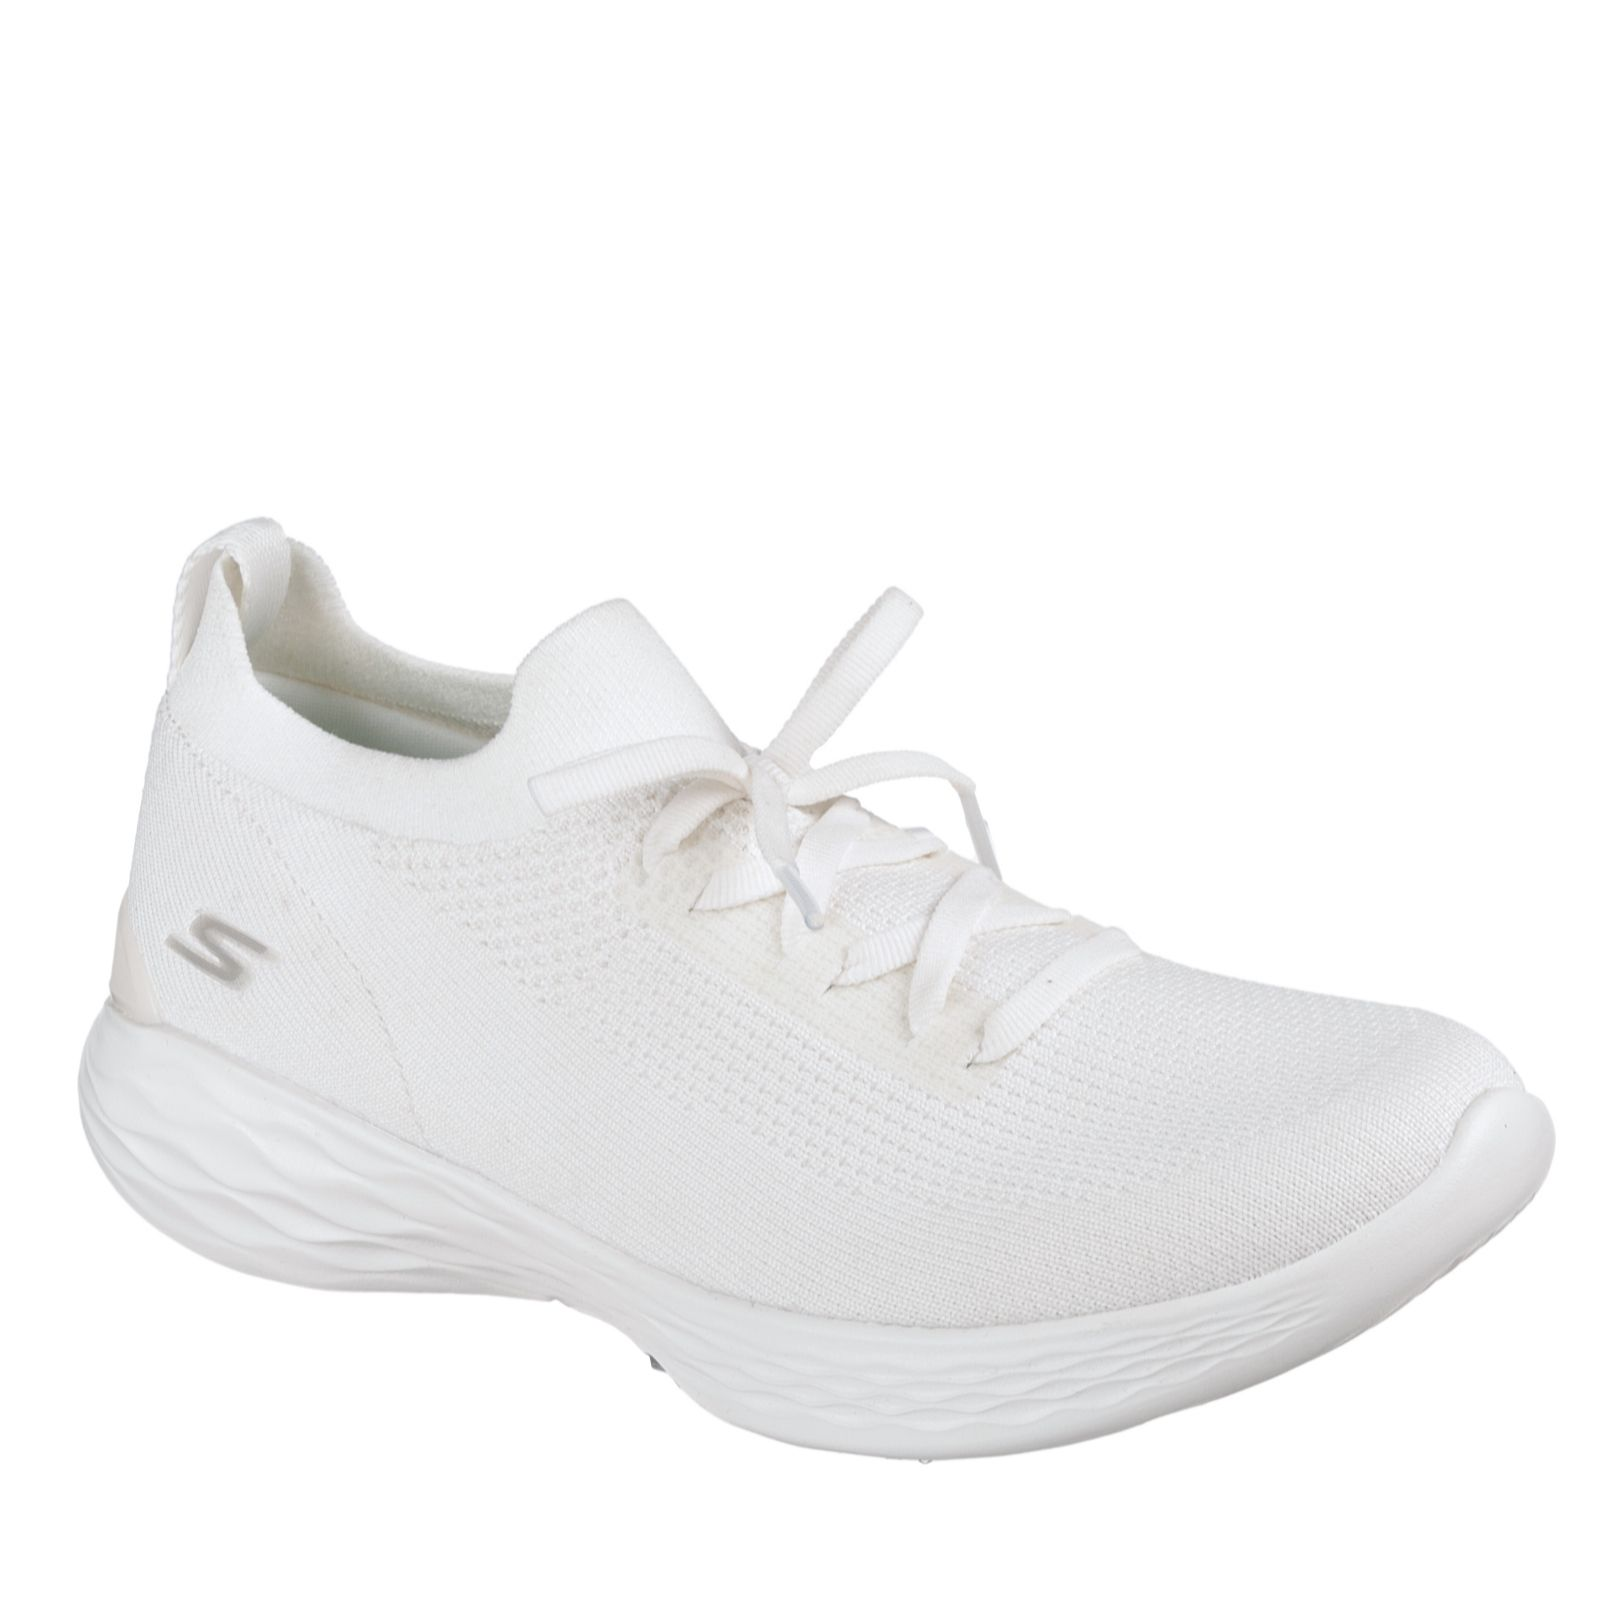 c72f8a7a58fa Skechers YOU Shine Slip On Knit Trainer with Memory Foam - QVC UK